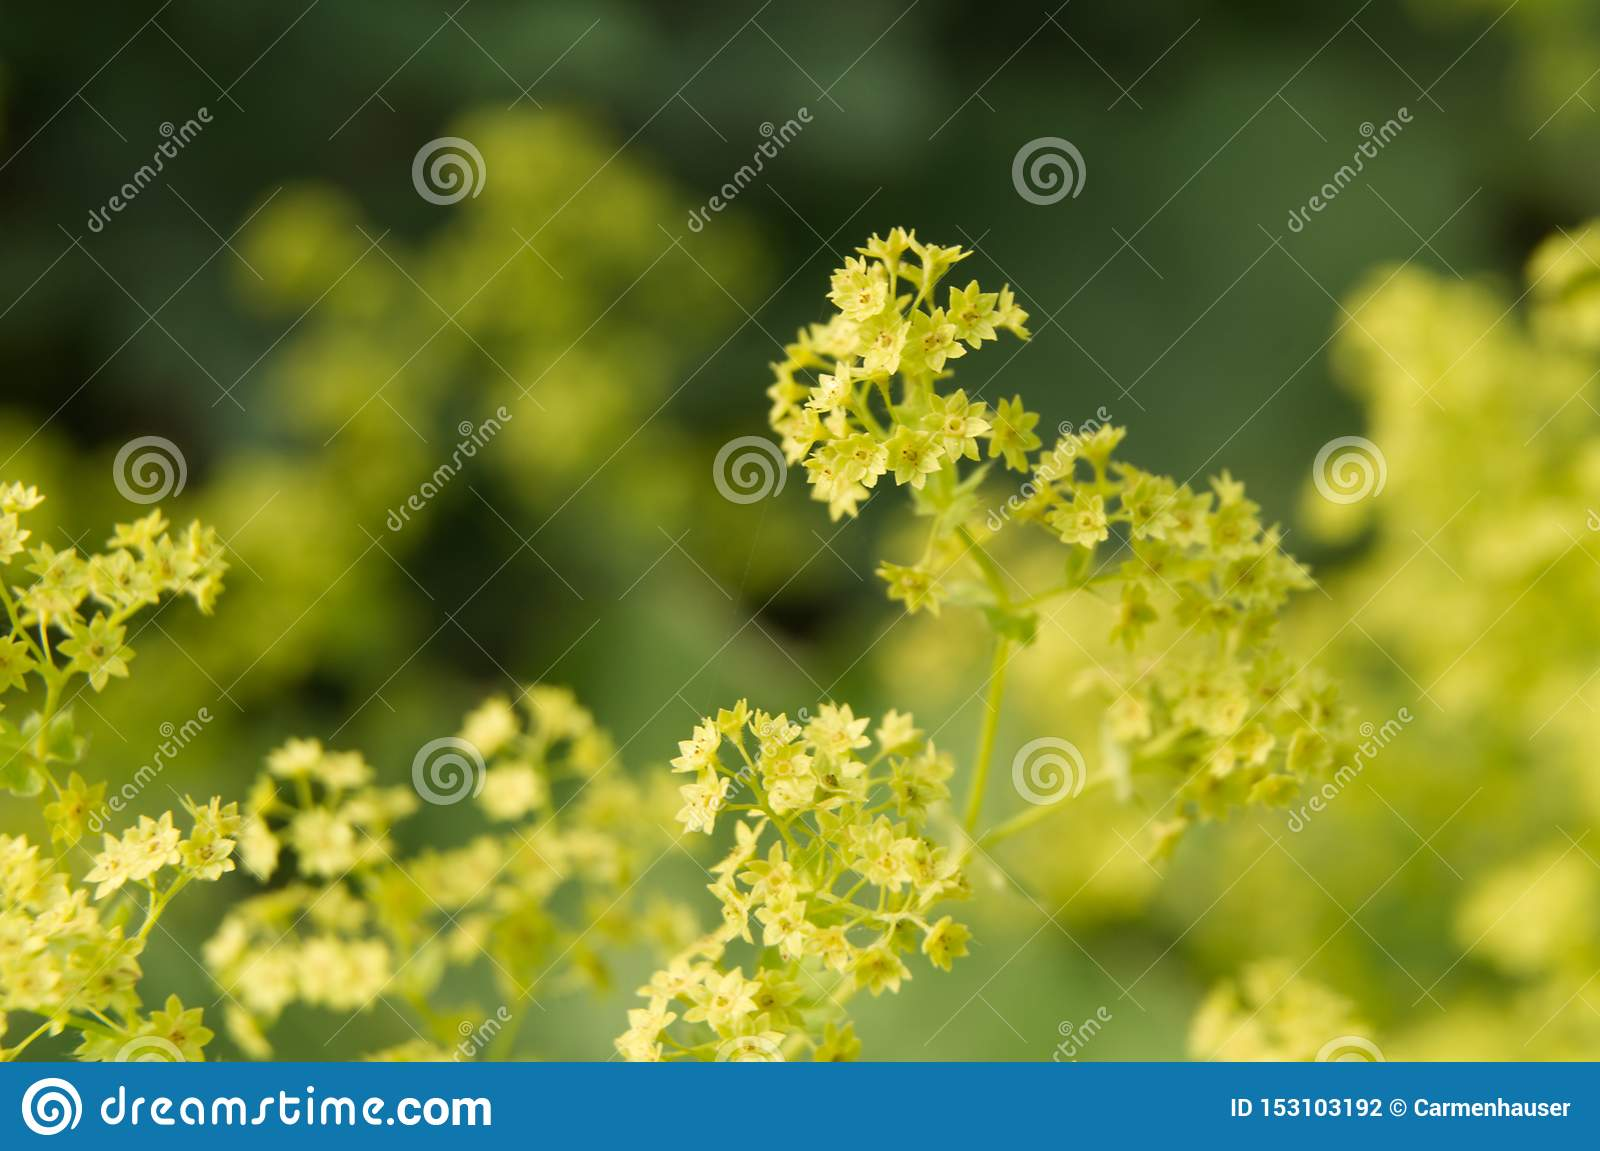 Bright green flowers of a lady s mantle bush